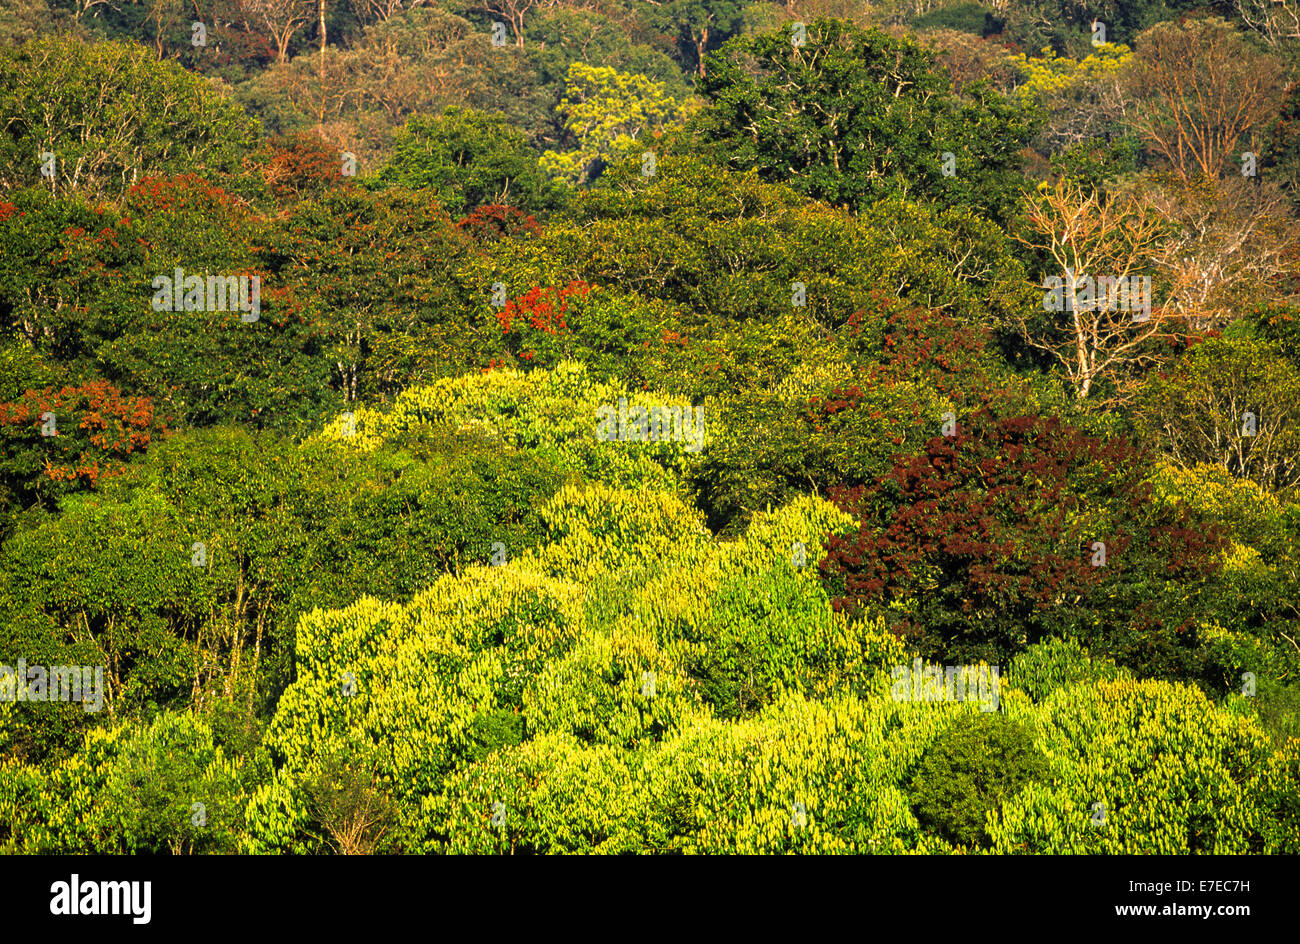 PERIYAR FOREST AND TREE DIVERSITY SOUTHERN INDIA - Stock Image